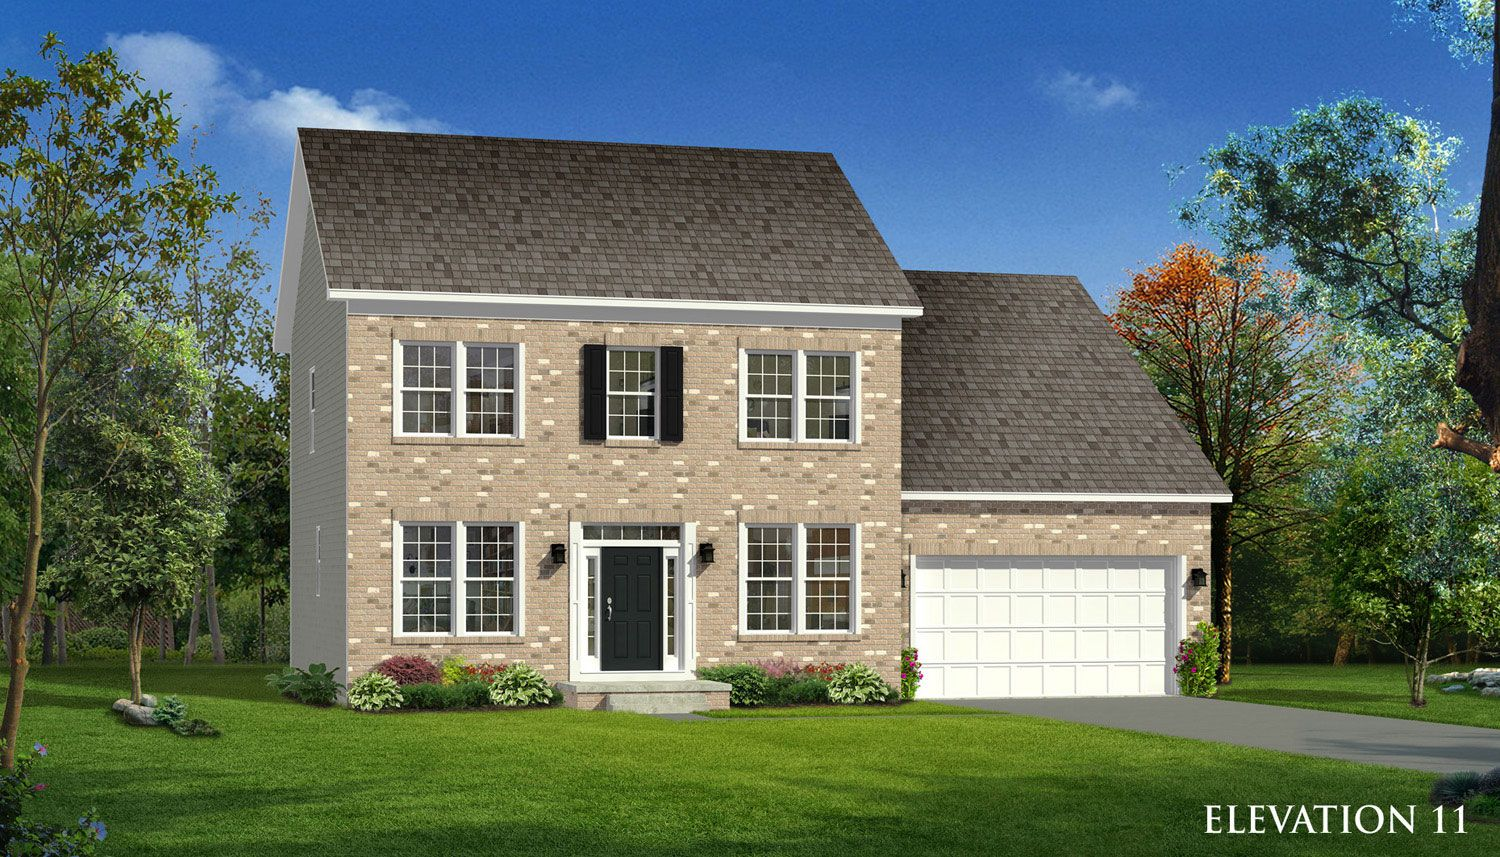 Single Family for Active at Shipley Meadows - Fairfax Ii 2112 Gable Drive Jessup, Maryland 20794 United States